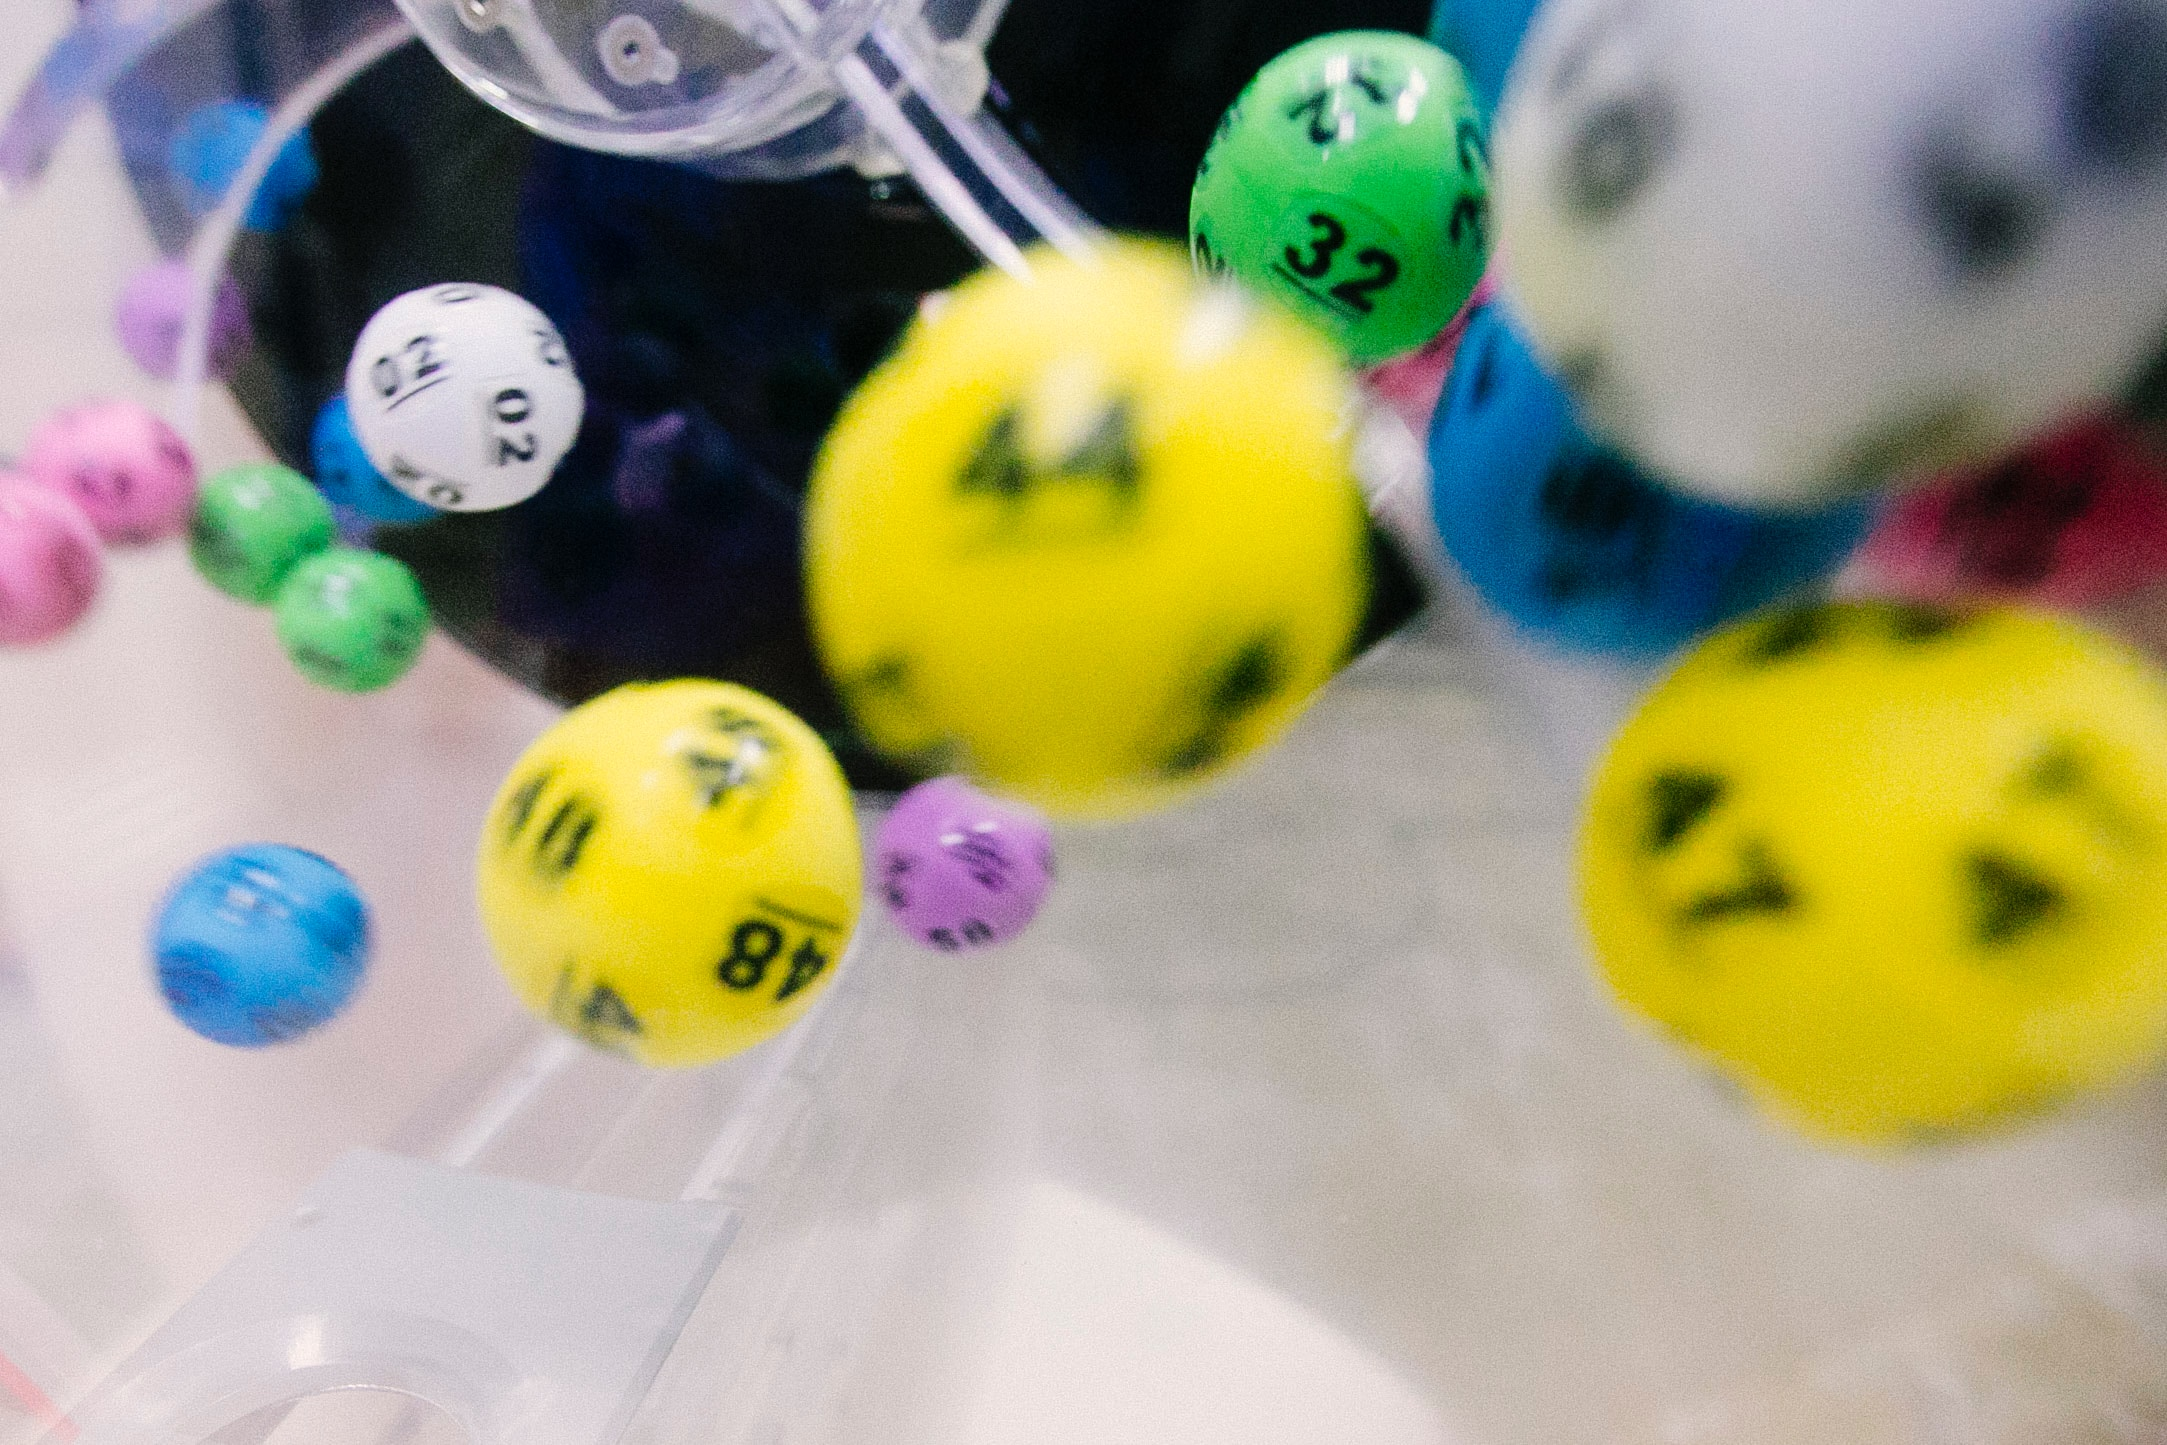 The Friends of Kingsteignton Library are hosting their monthly Bingo event, which will take place at Church Hall Chudleigh Road KIngsteignton. Doors open at 7pm ready for eyes down at 7:30pm. the price will depend on the amount of Bingo cards required.